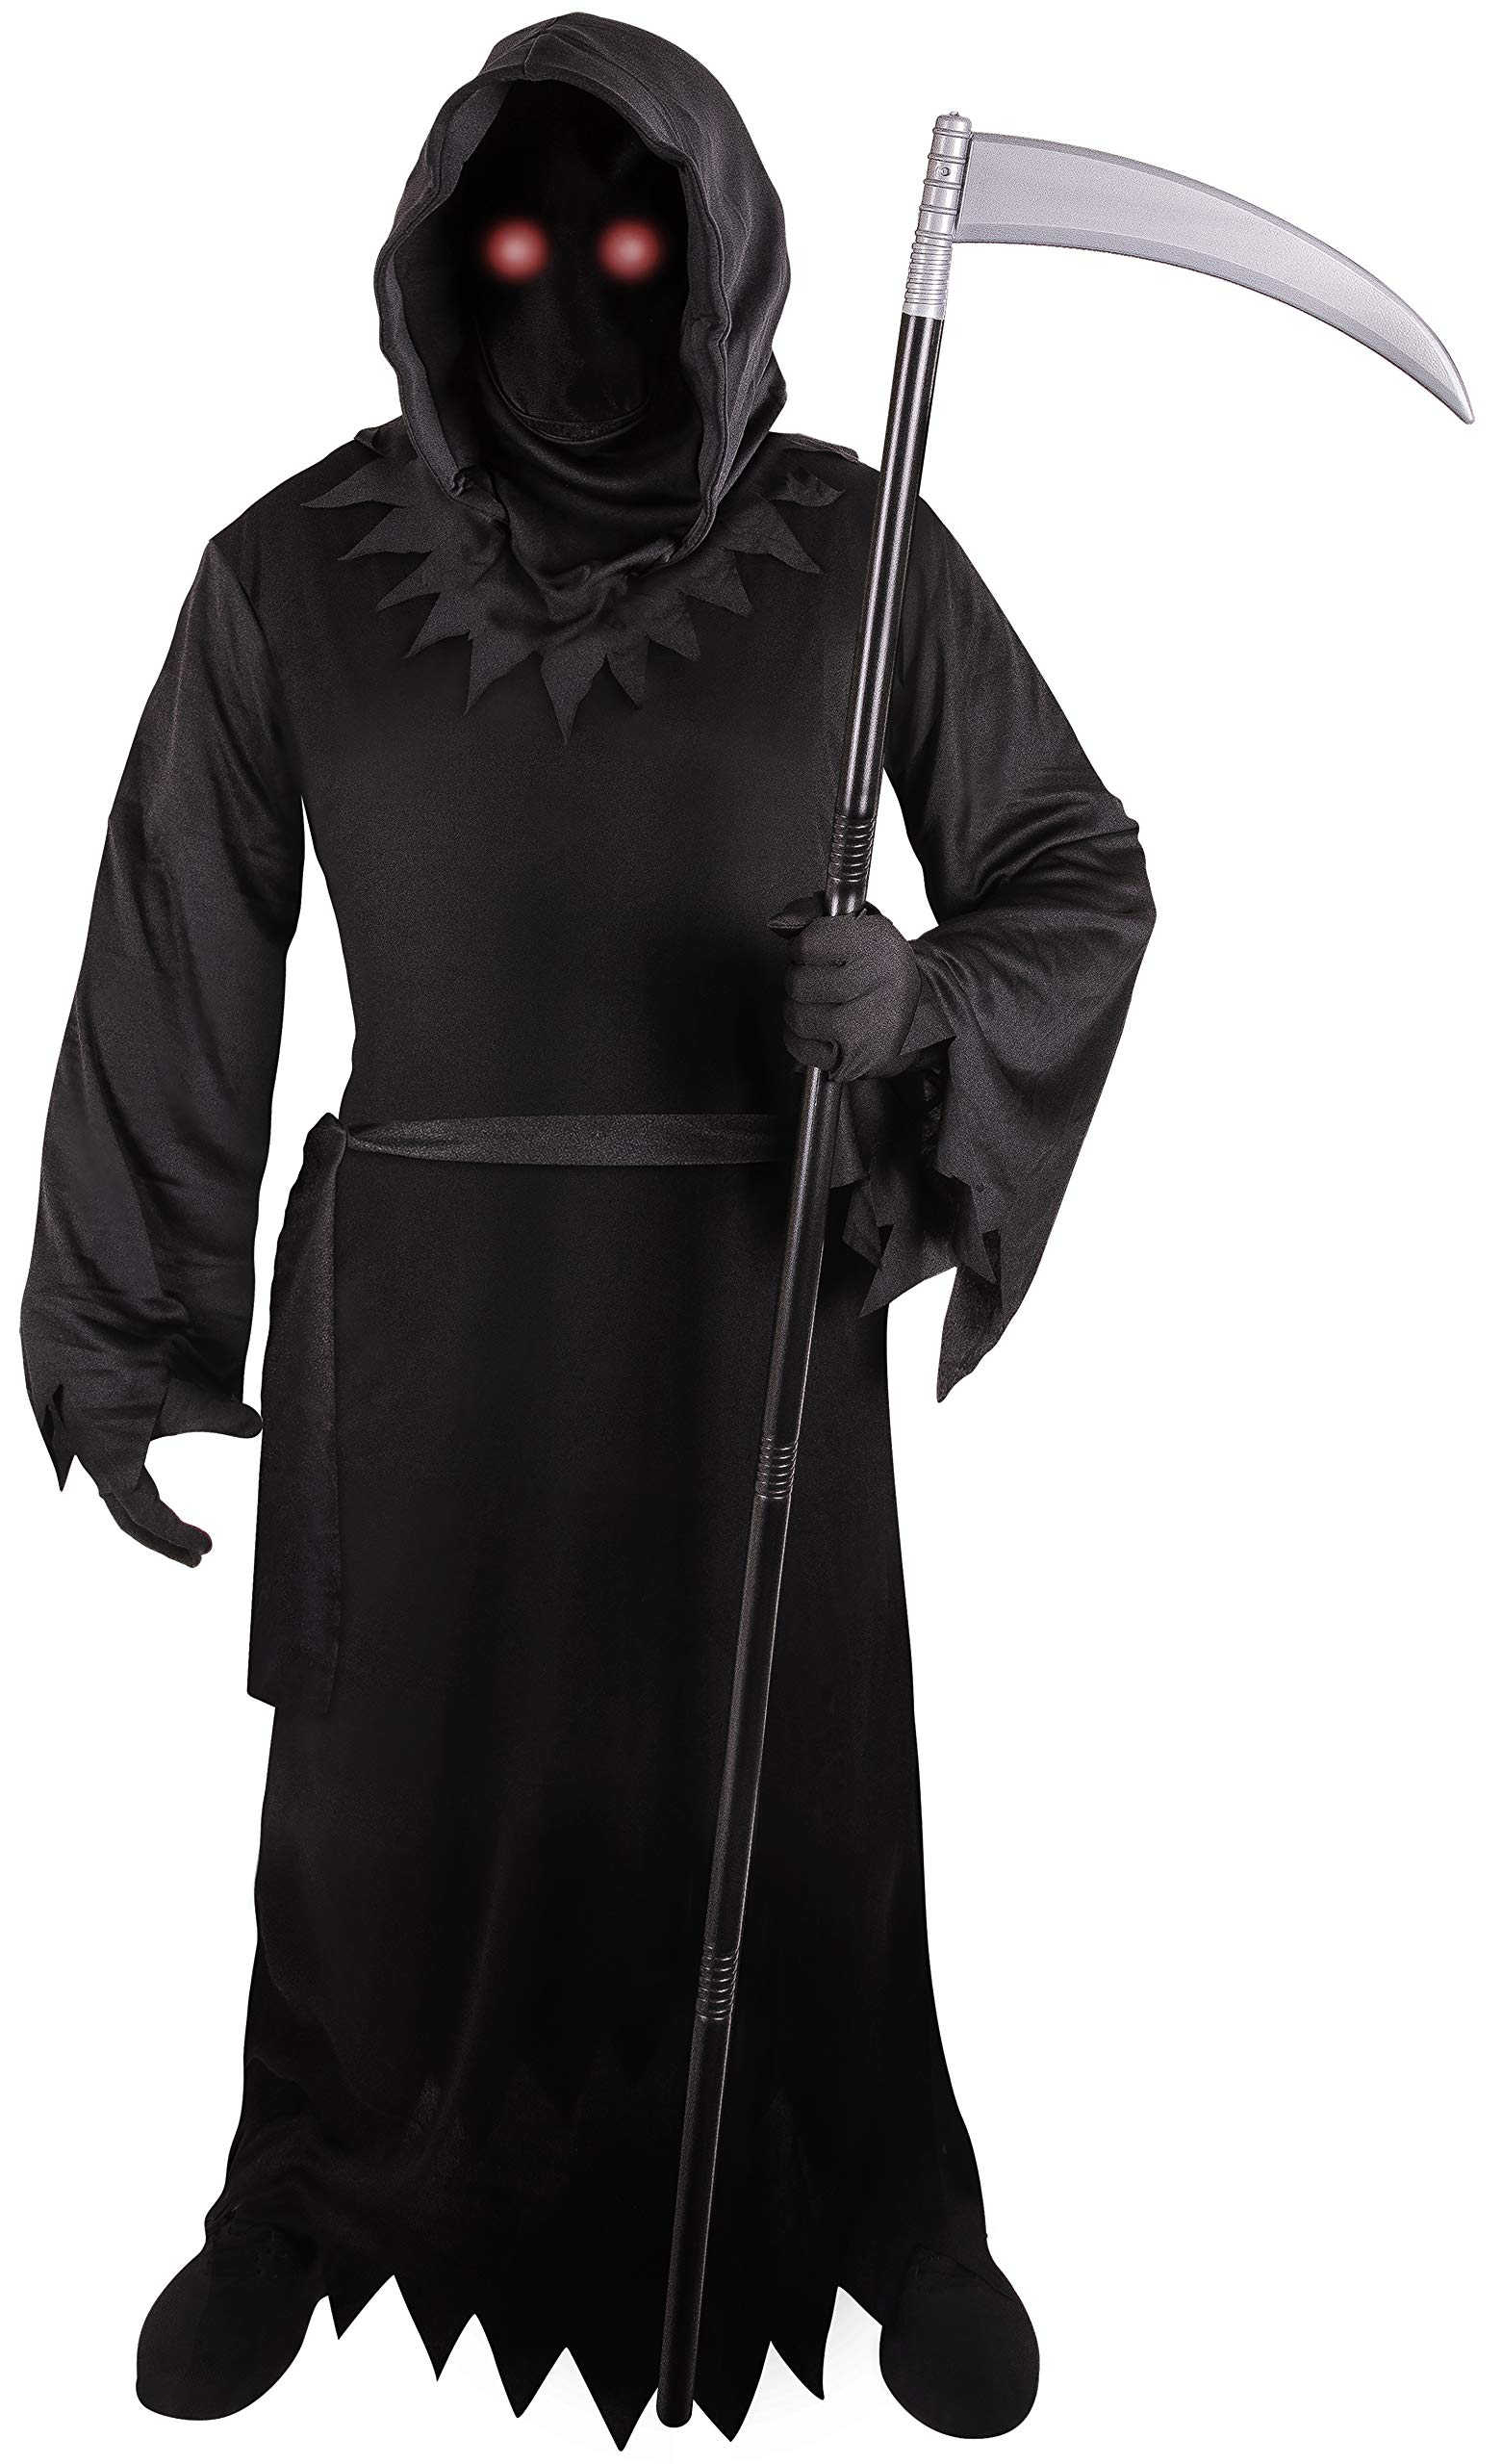 Grim Reaper Costume for Kids with Light Up Red Eyes (Medium (8-10) by K Brands